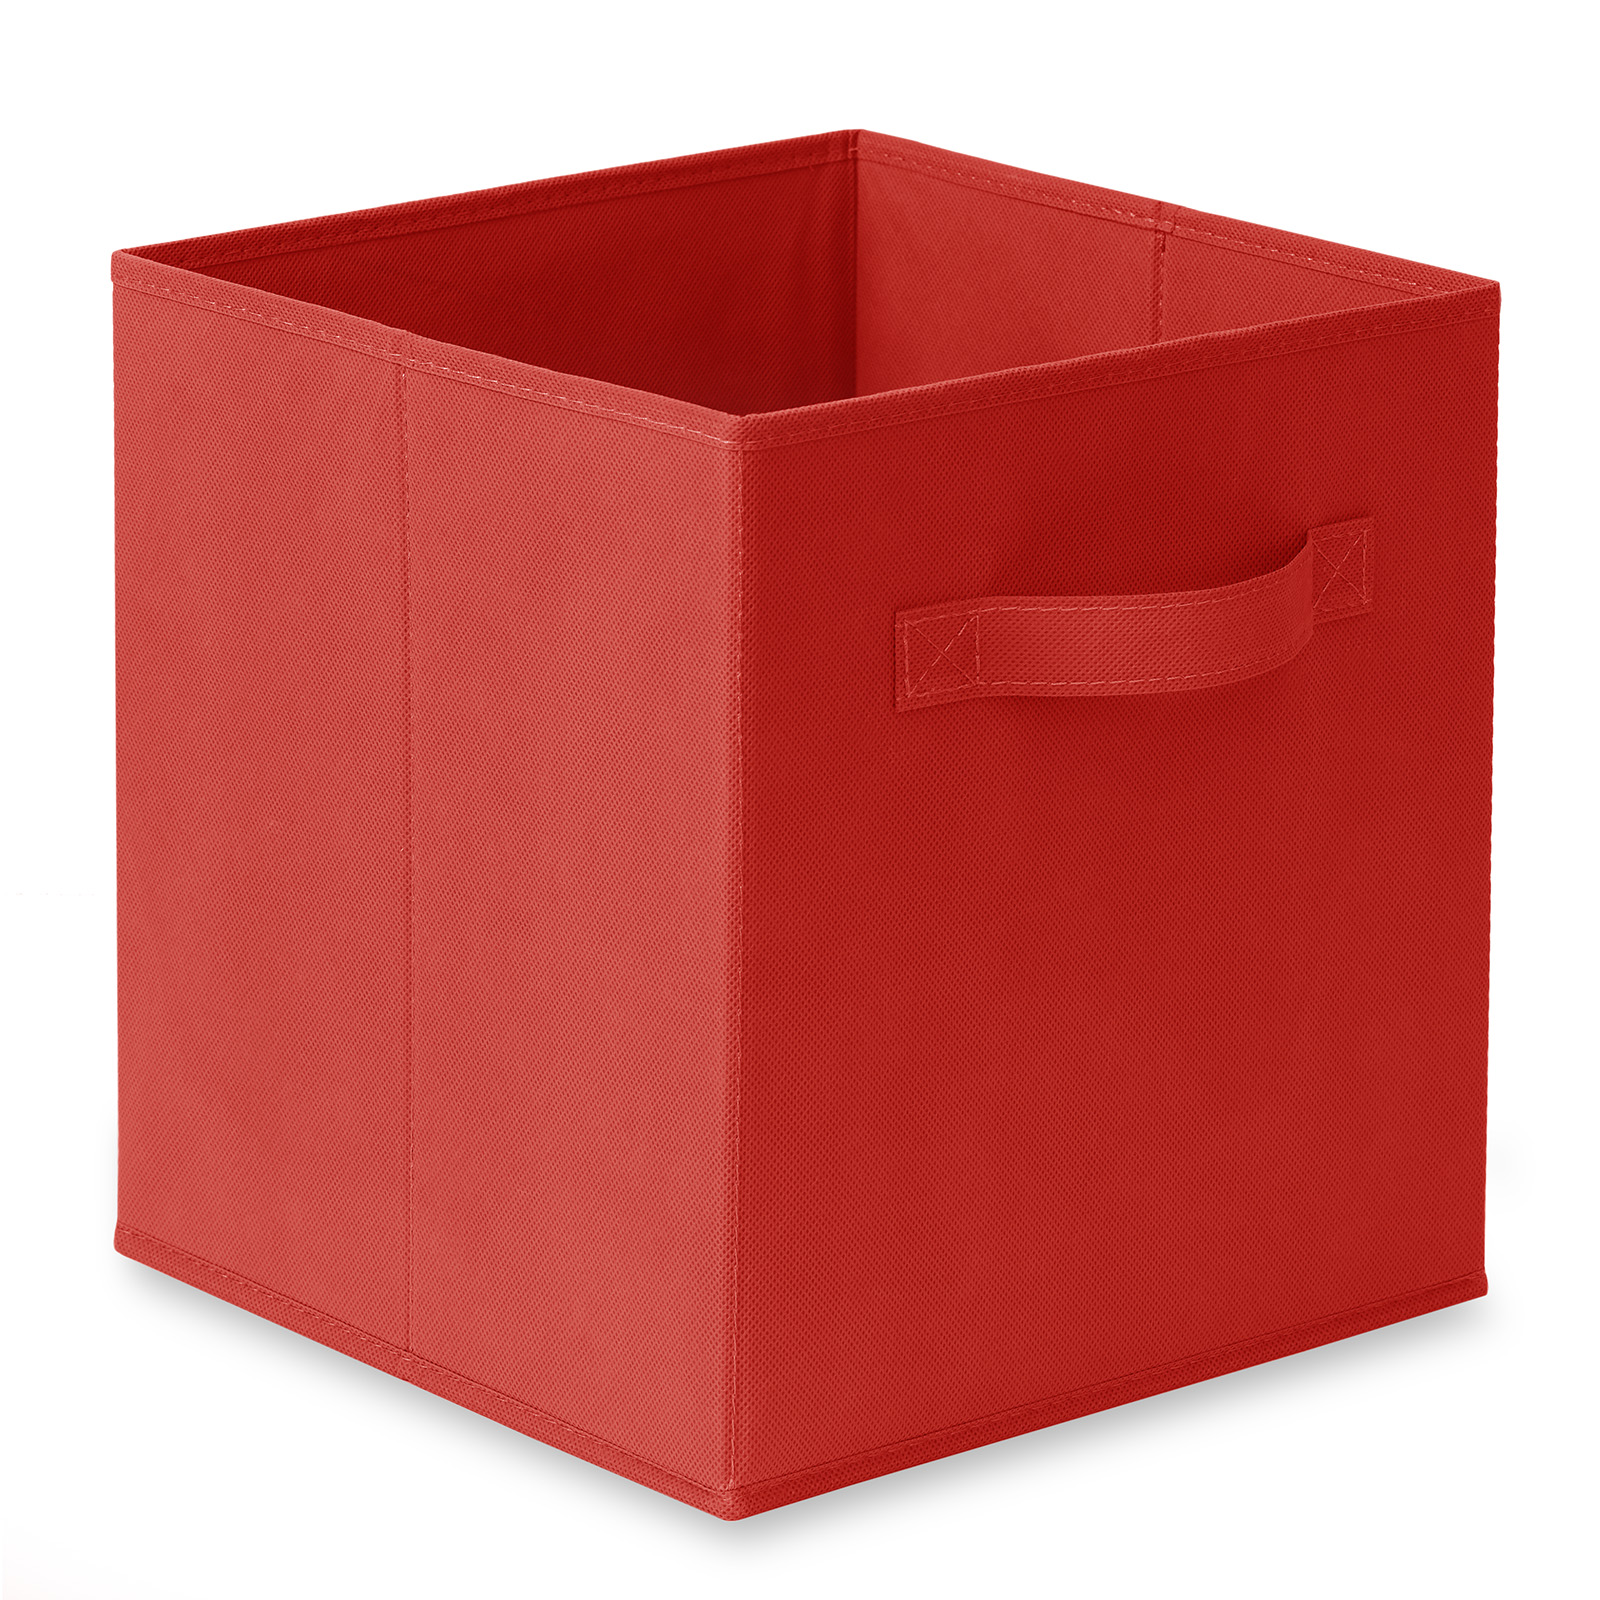 6-Collapsible-Foldable-Cloth-Fabric-Cubby-Cube-Storage-Bins-Baskets-for-Shelves thumbnail 63